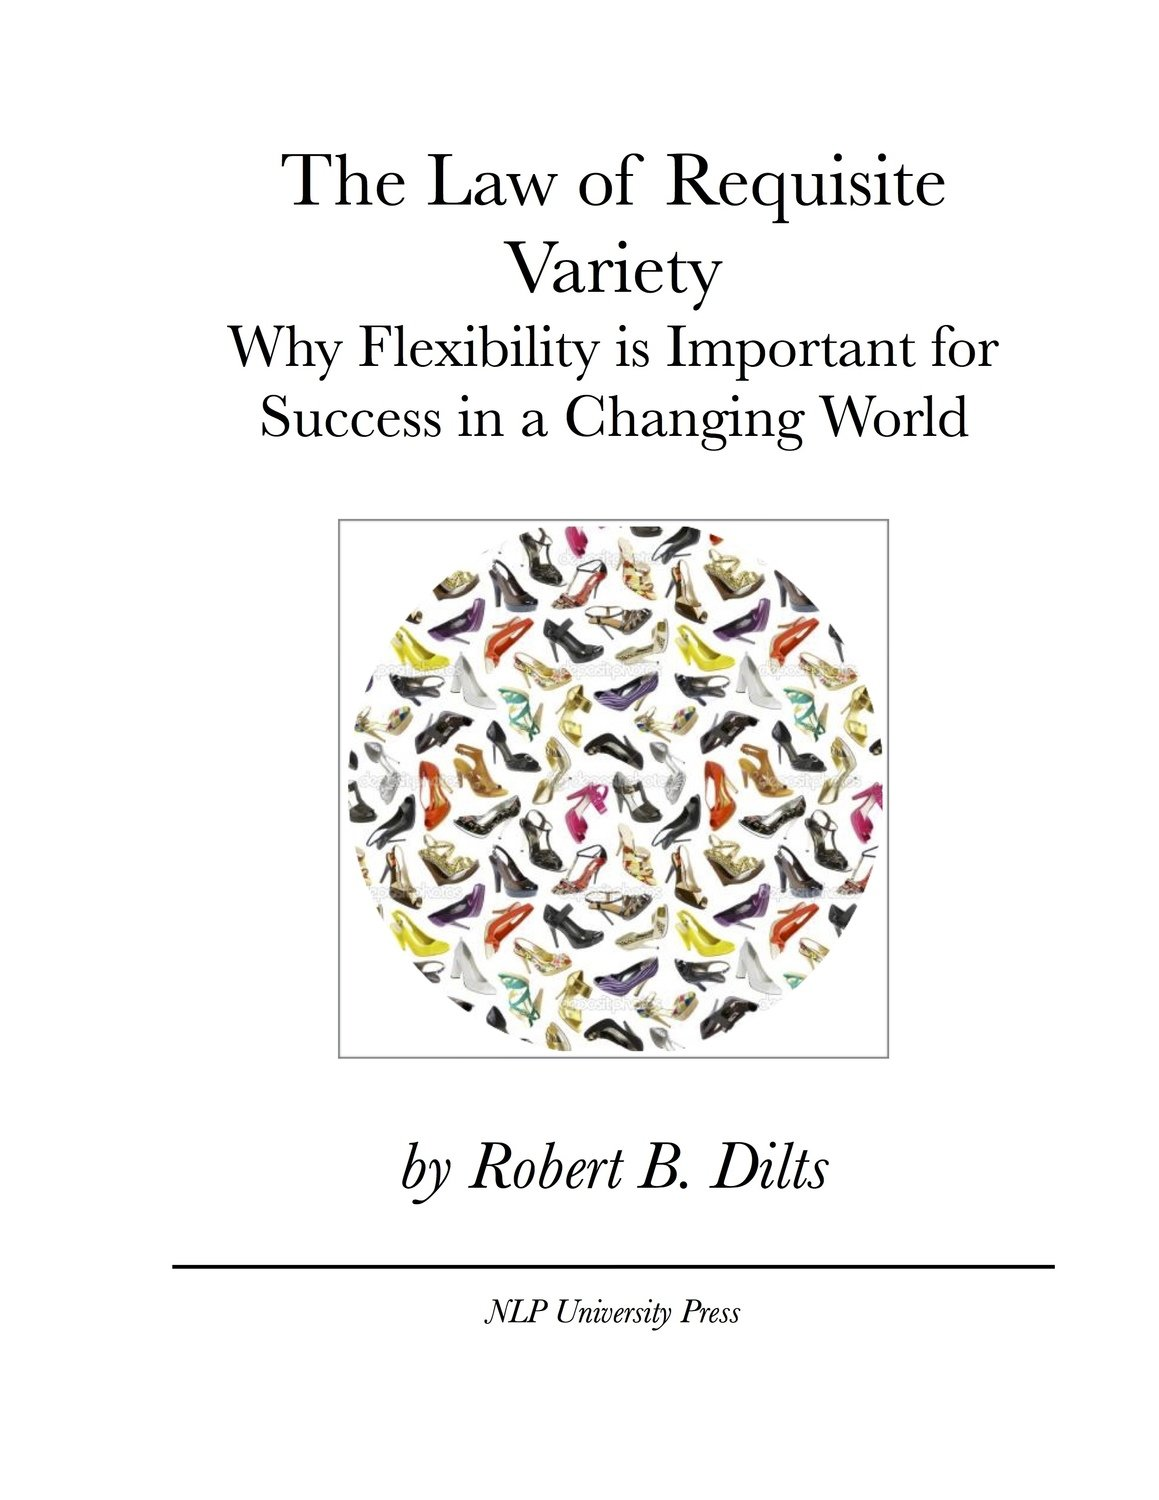 The Law of Requisite Variety: Why Flexibility is Important for Success in a Changing World